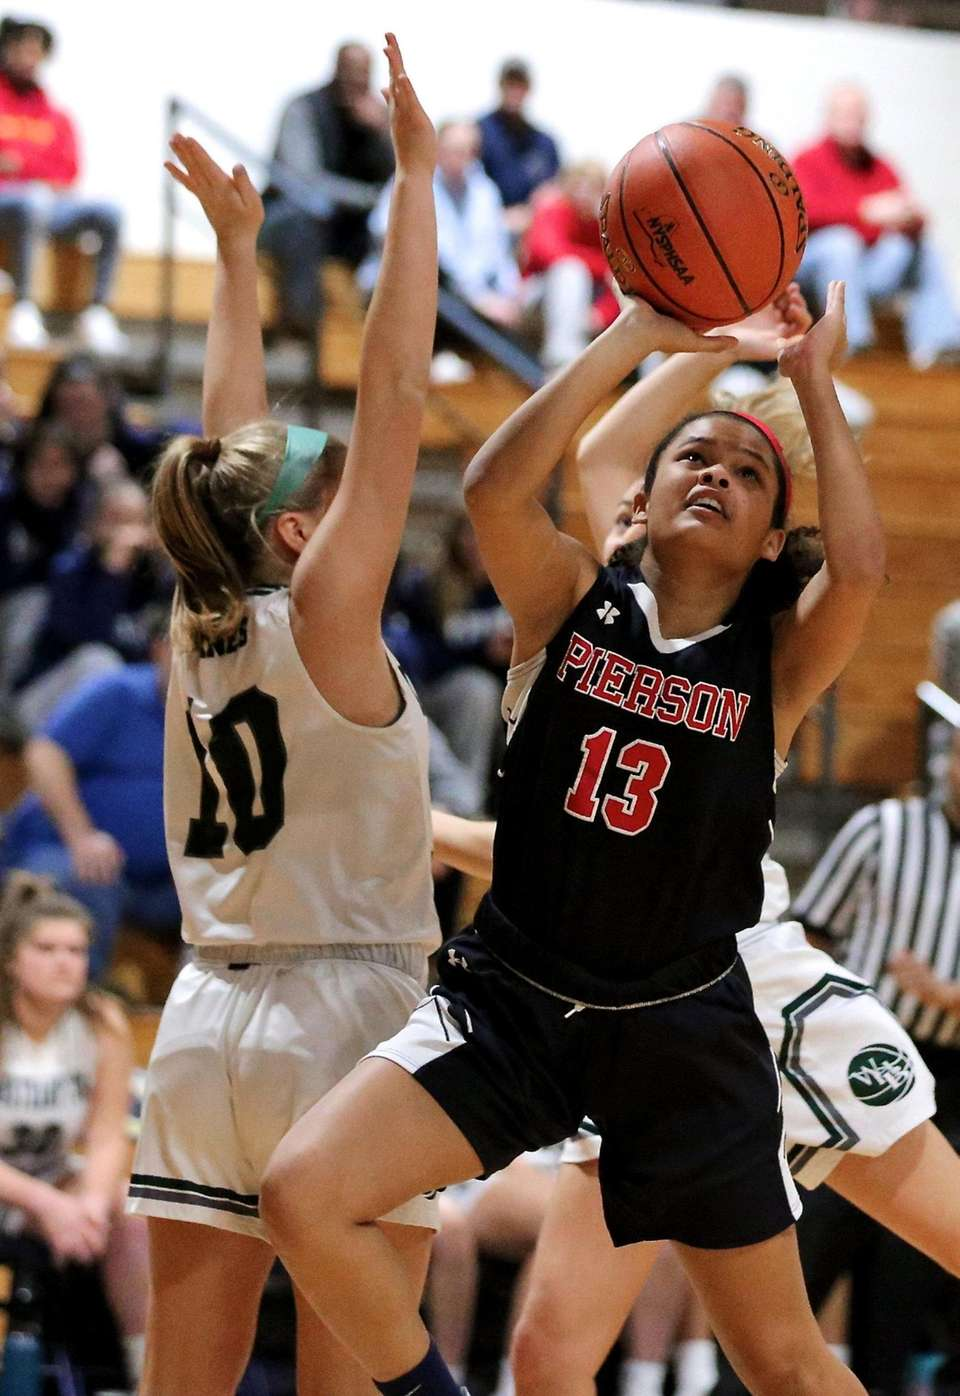 Pierson guard Chiara Bedini takes the ball in